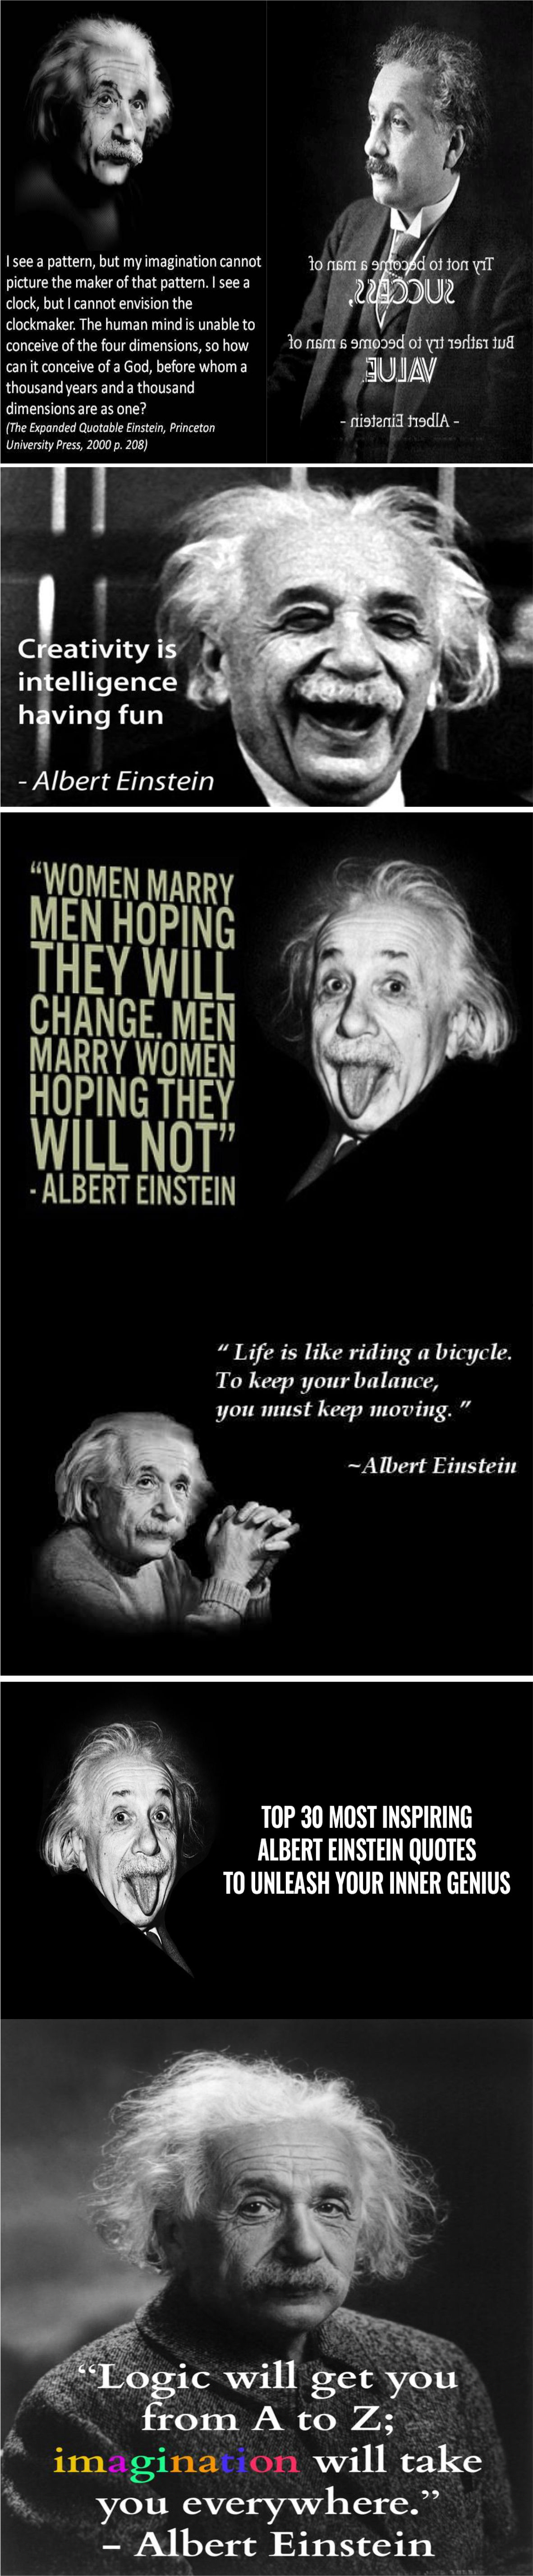 All new albert einstein quotes with images